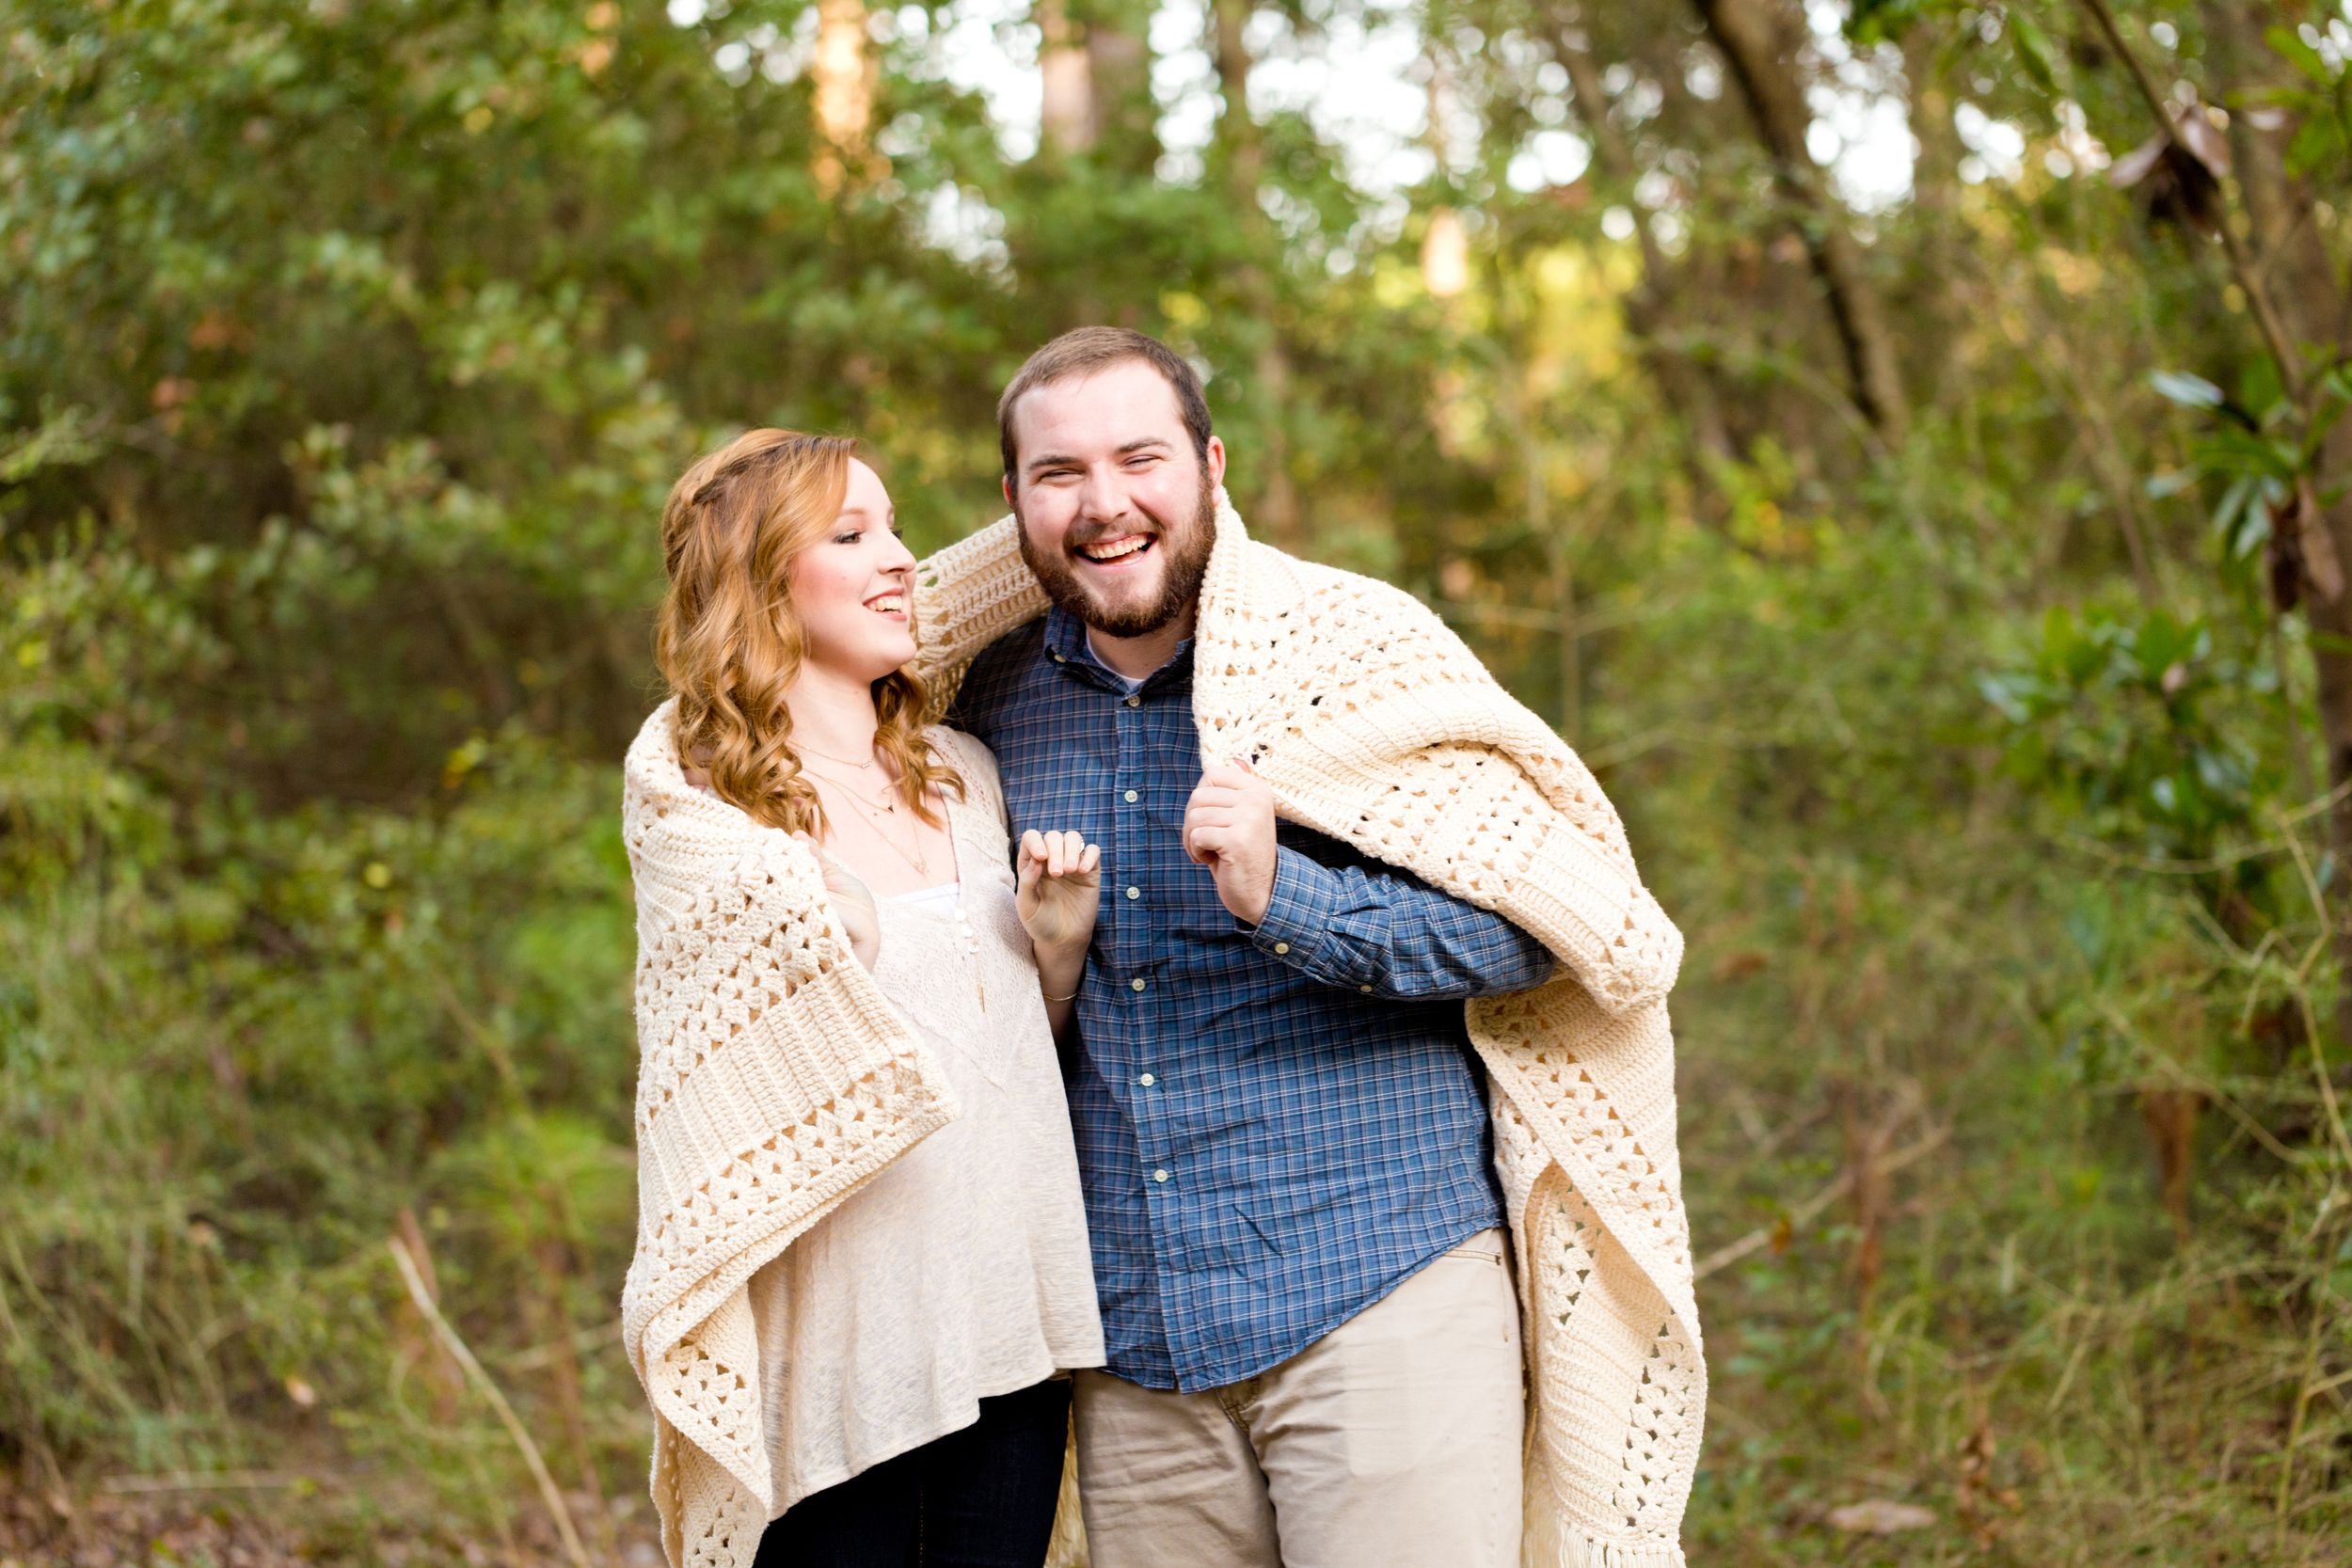 cute couple laughing wrapped in blanket outdoors